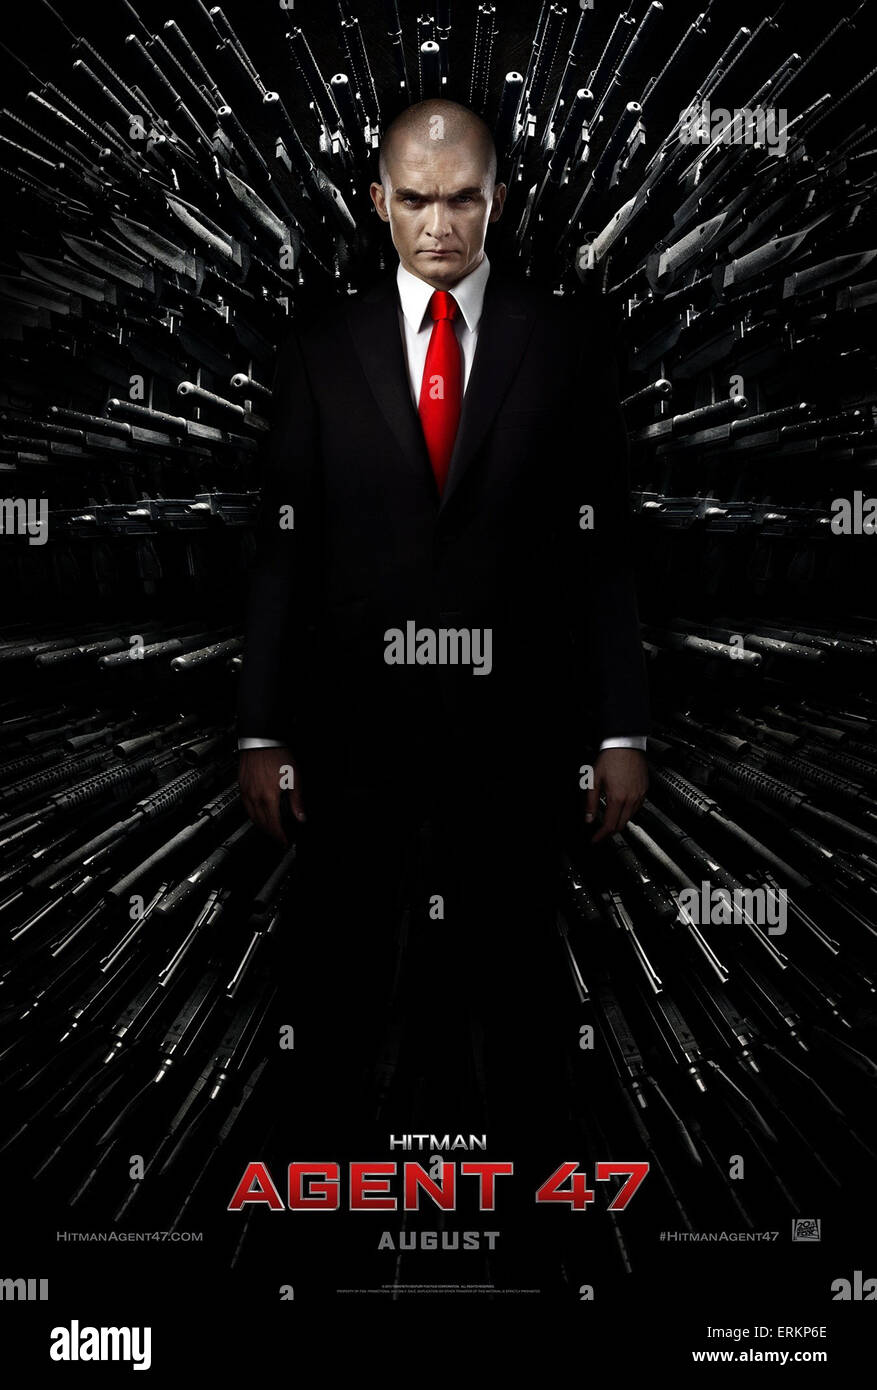 Agent Movie Poster High Resolution Stock Photography And Images